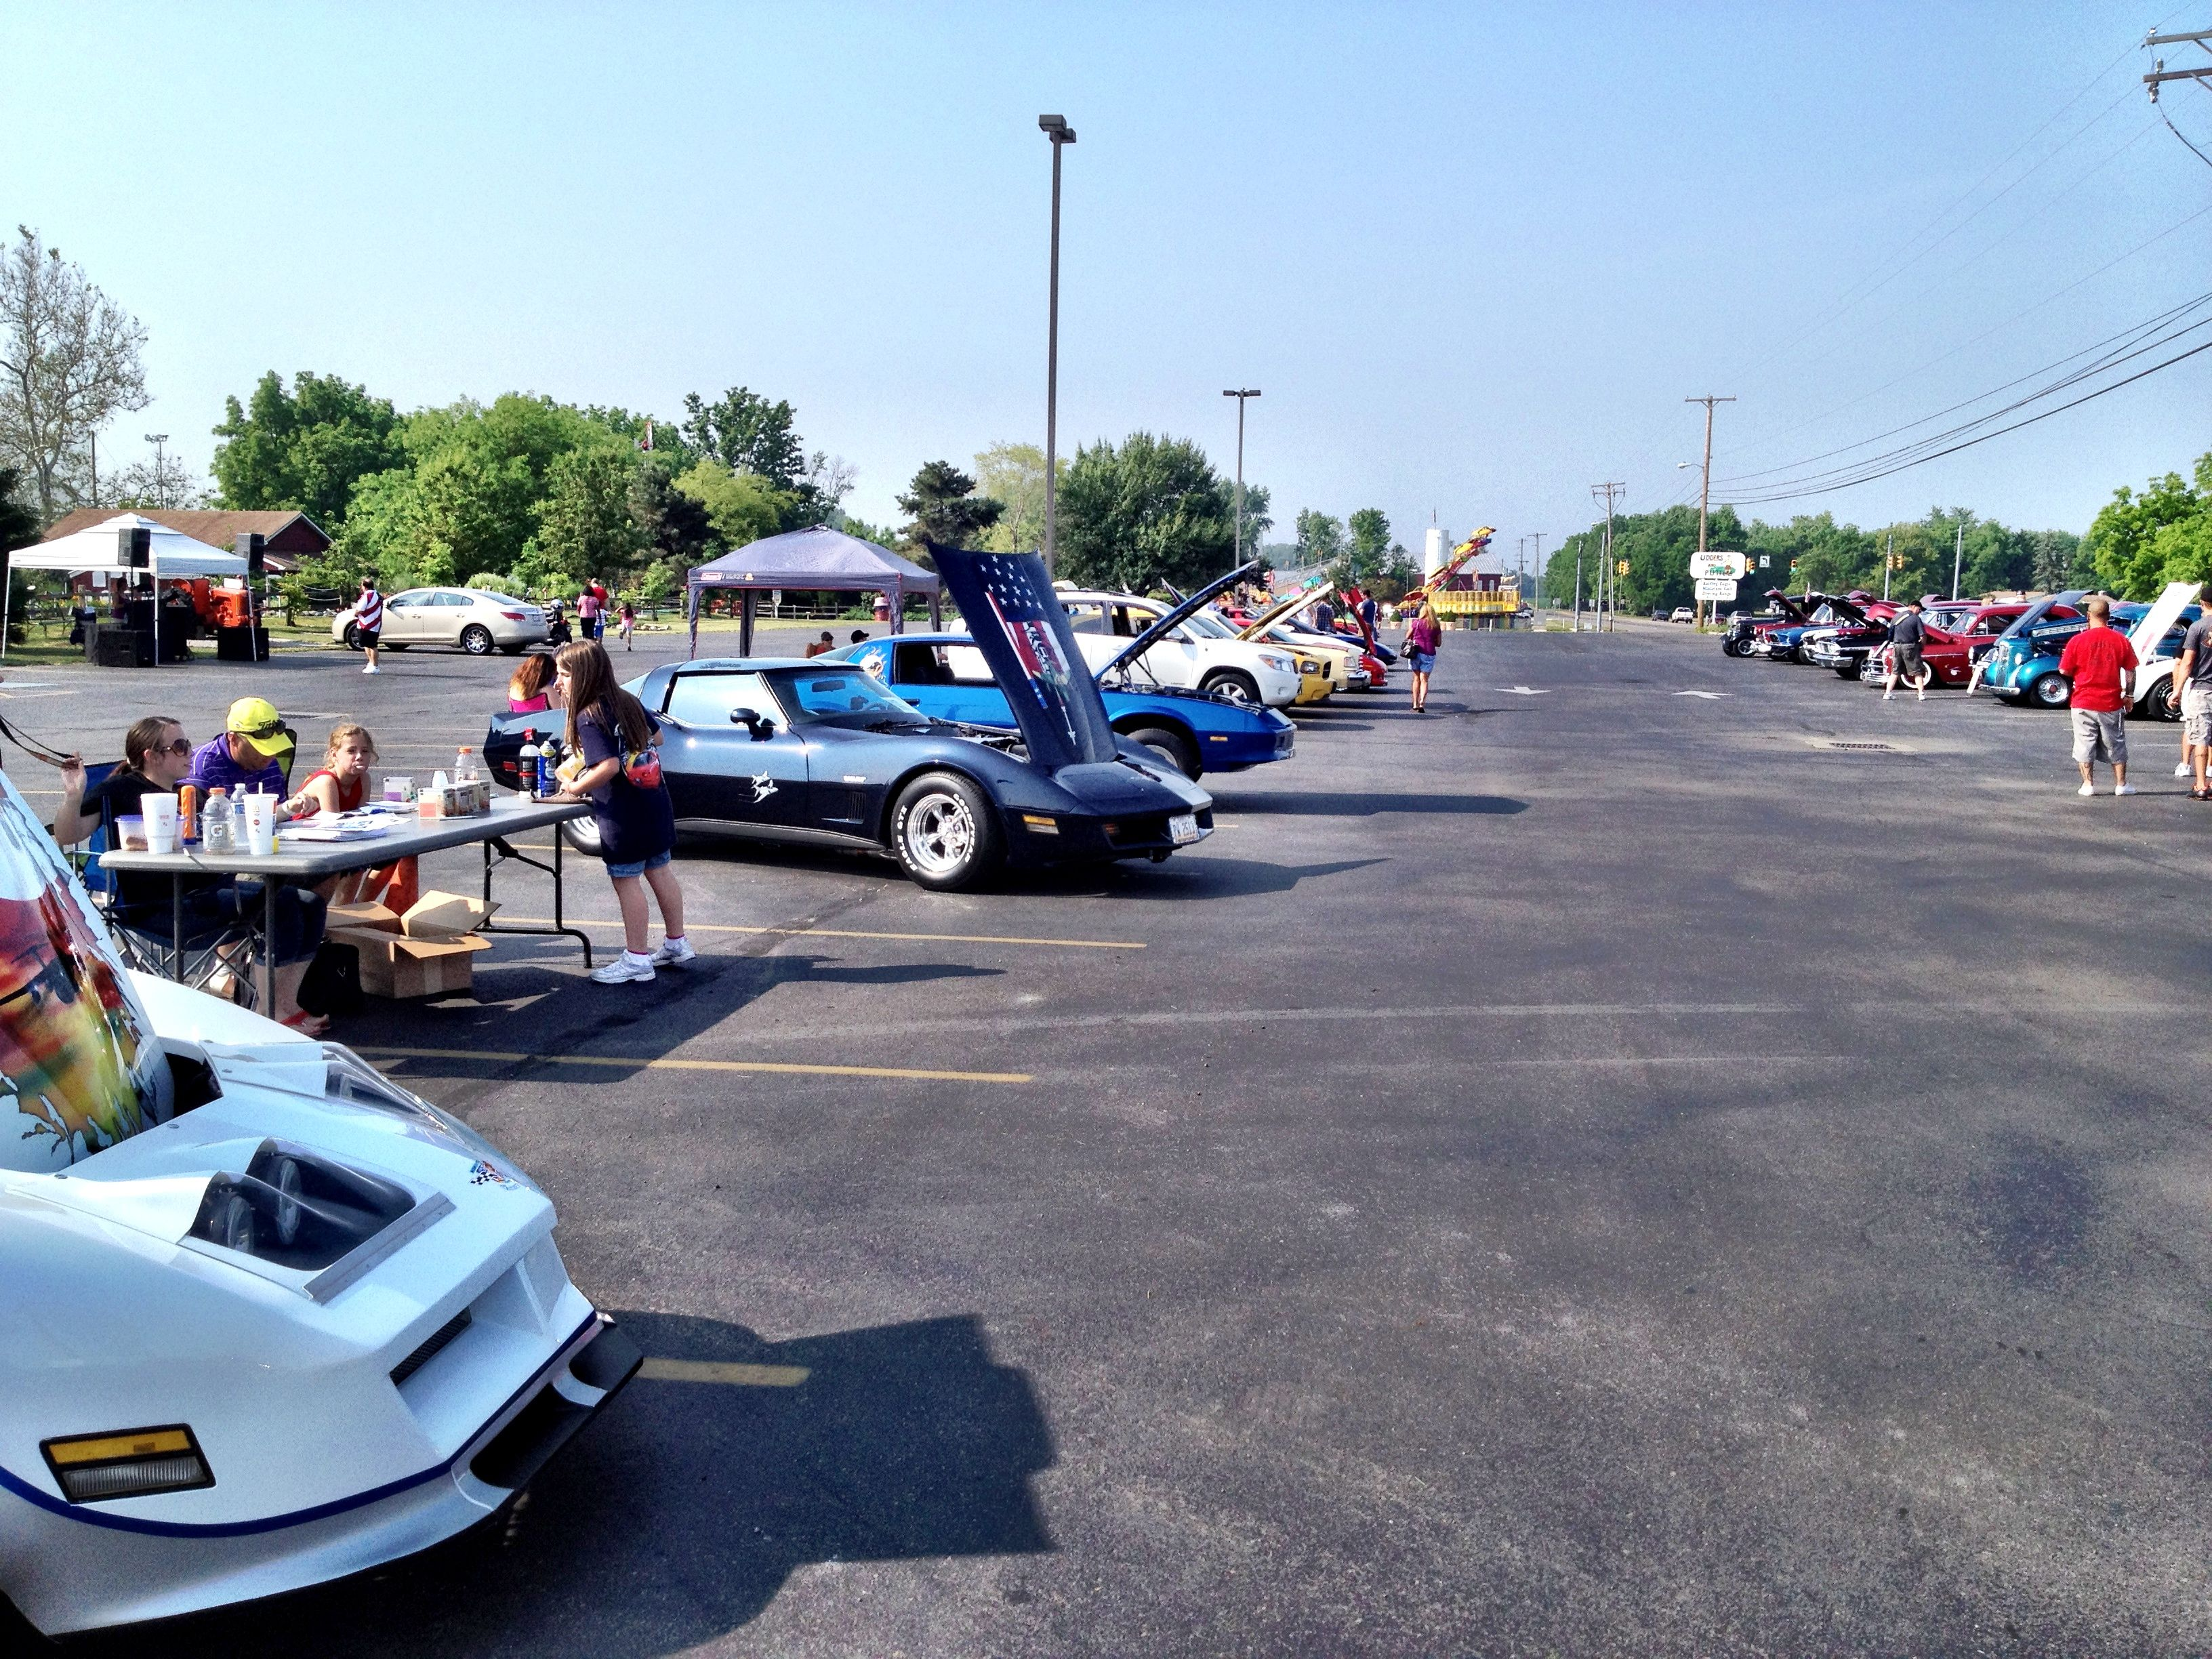 Vettes Supporting Vets Car Show May 26, 2012 Car show